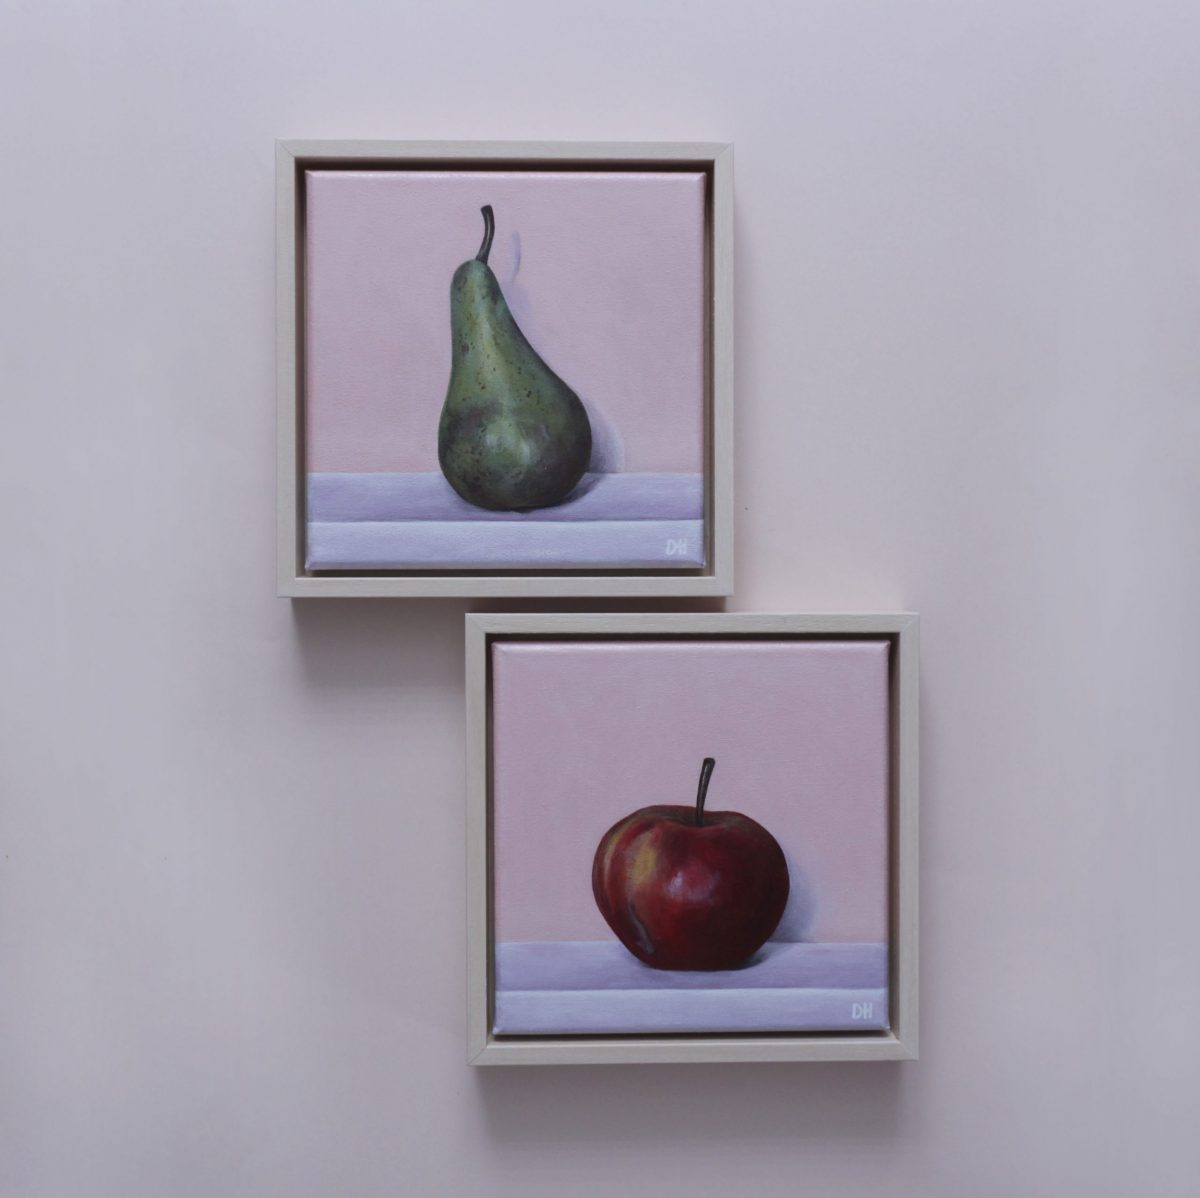 'A Pear' & 'An Apple'